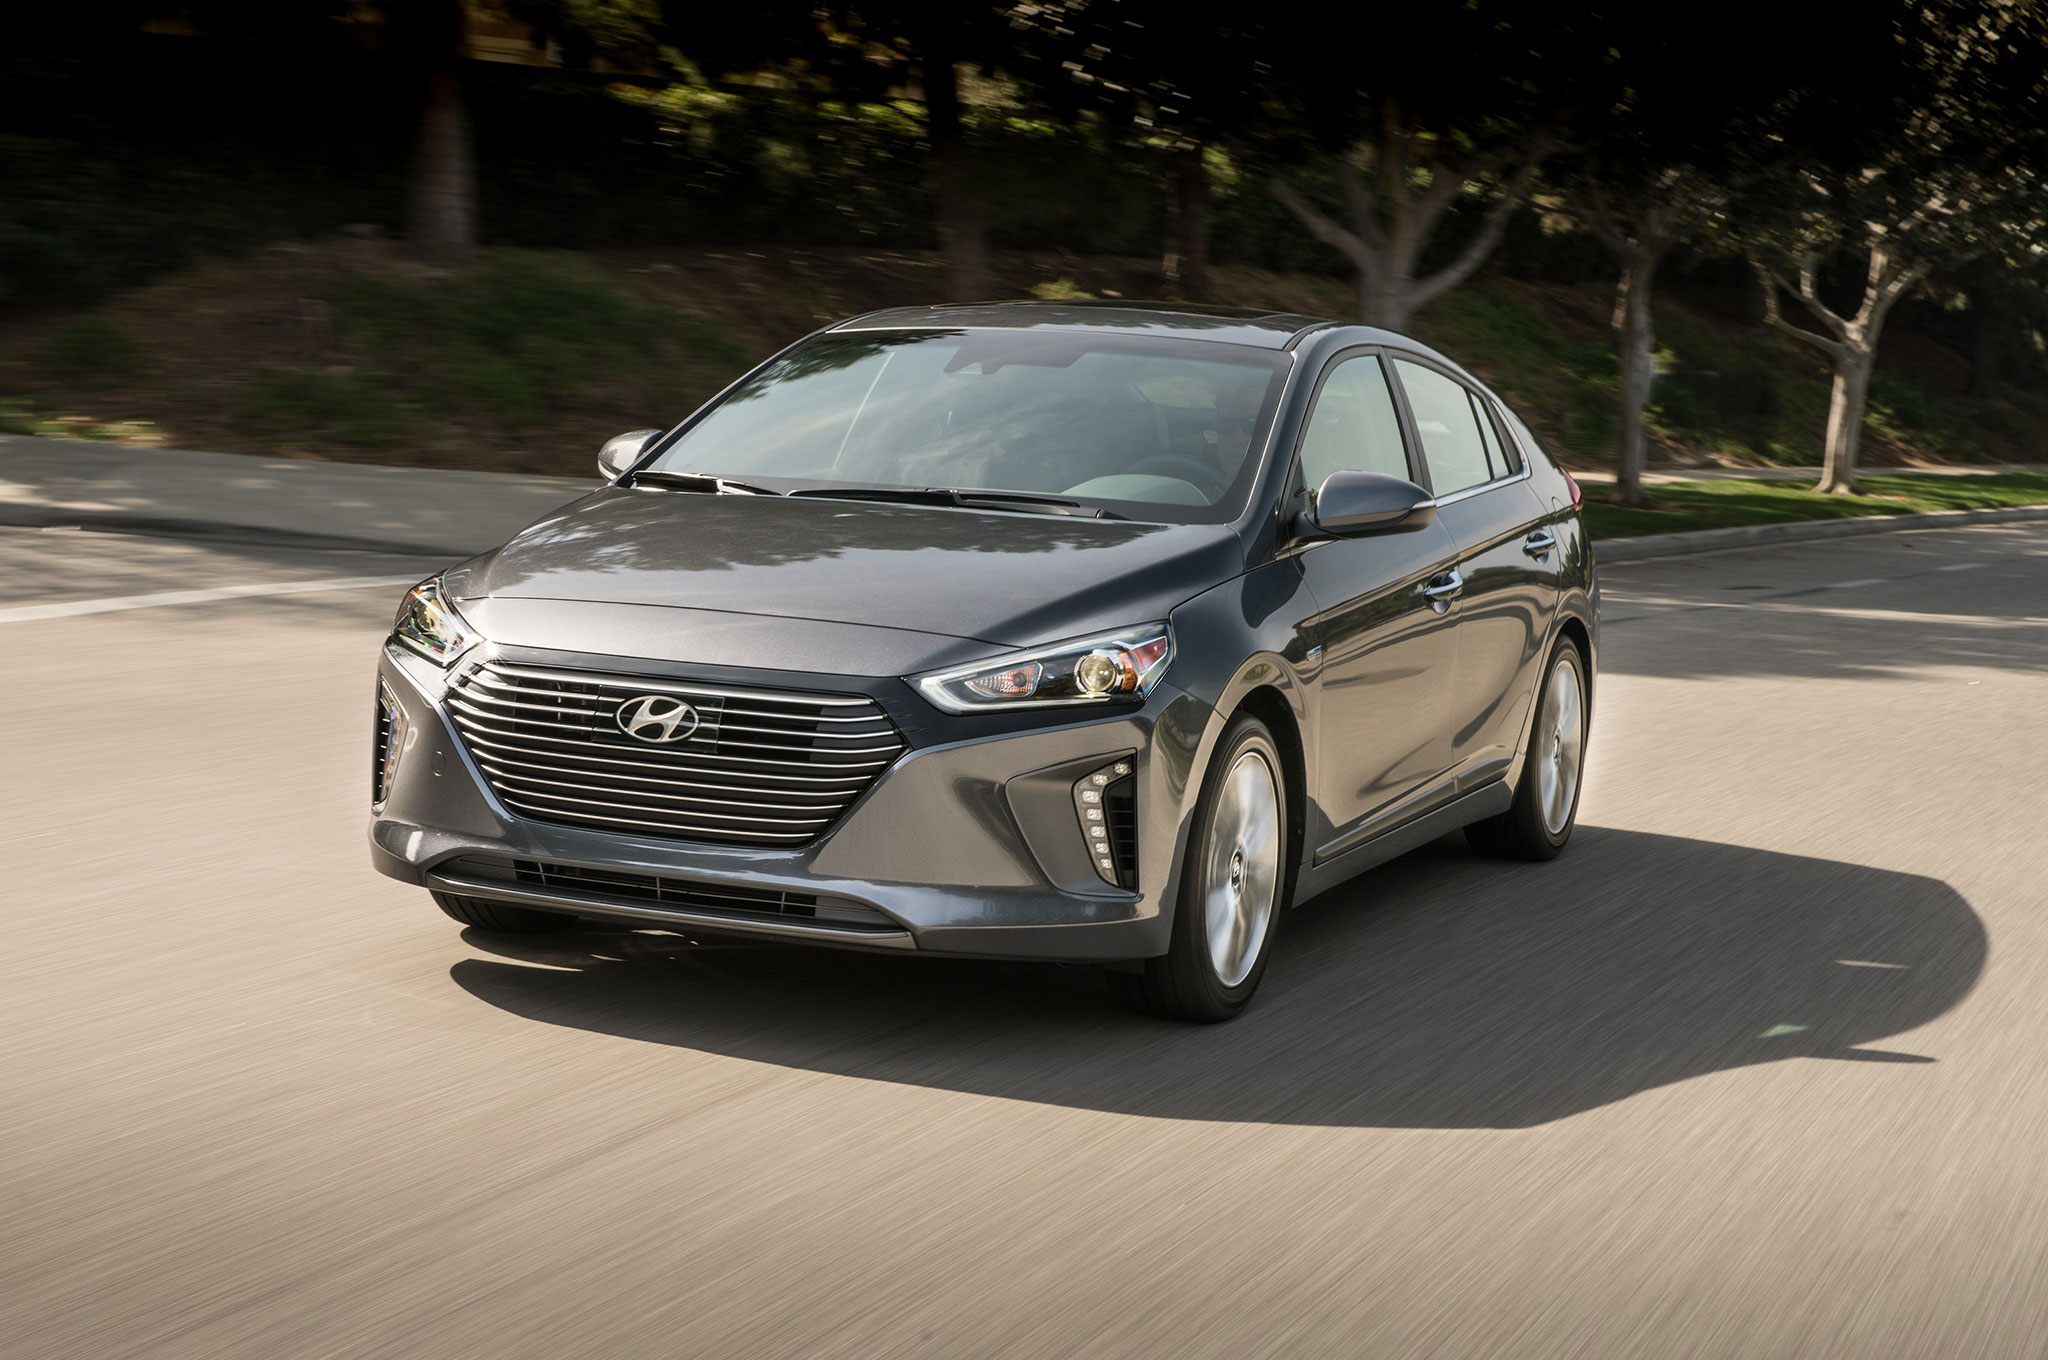 2015 hyundai sonata pricing options and specifications cleanmpg - 50 94